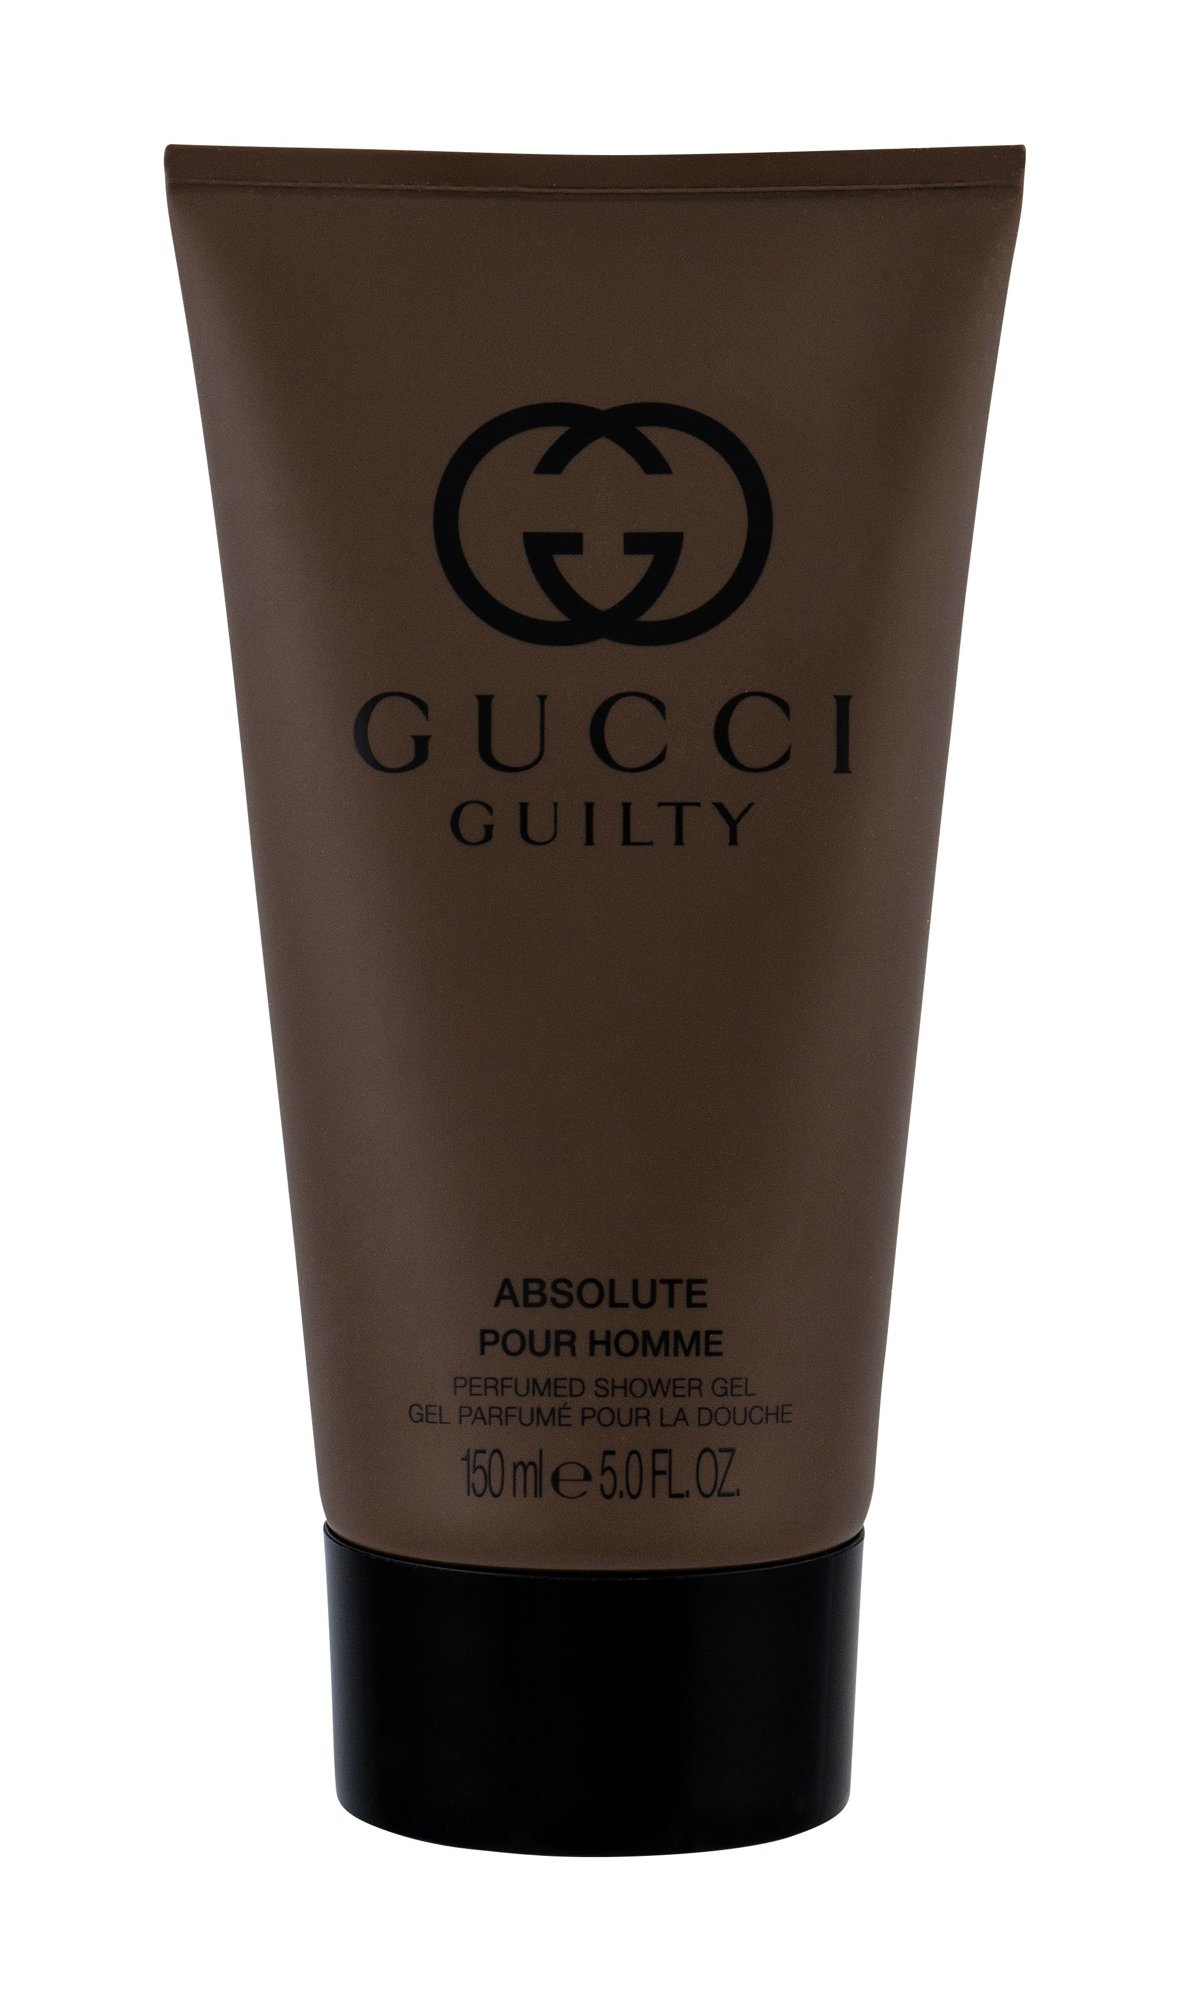 Gucci Guilty Absolute Pour Homme Shower Gel 150ml